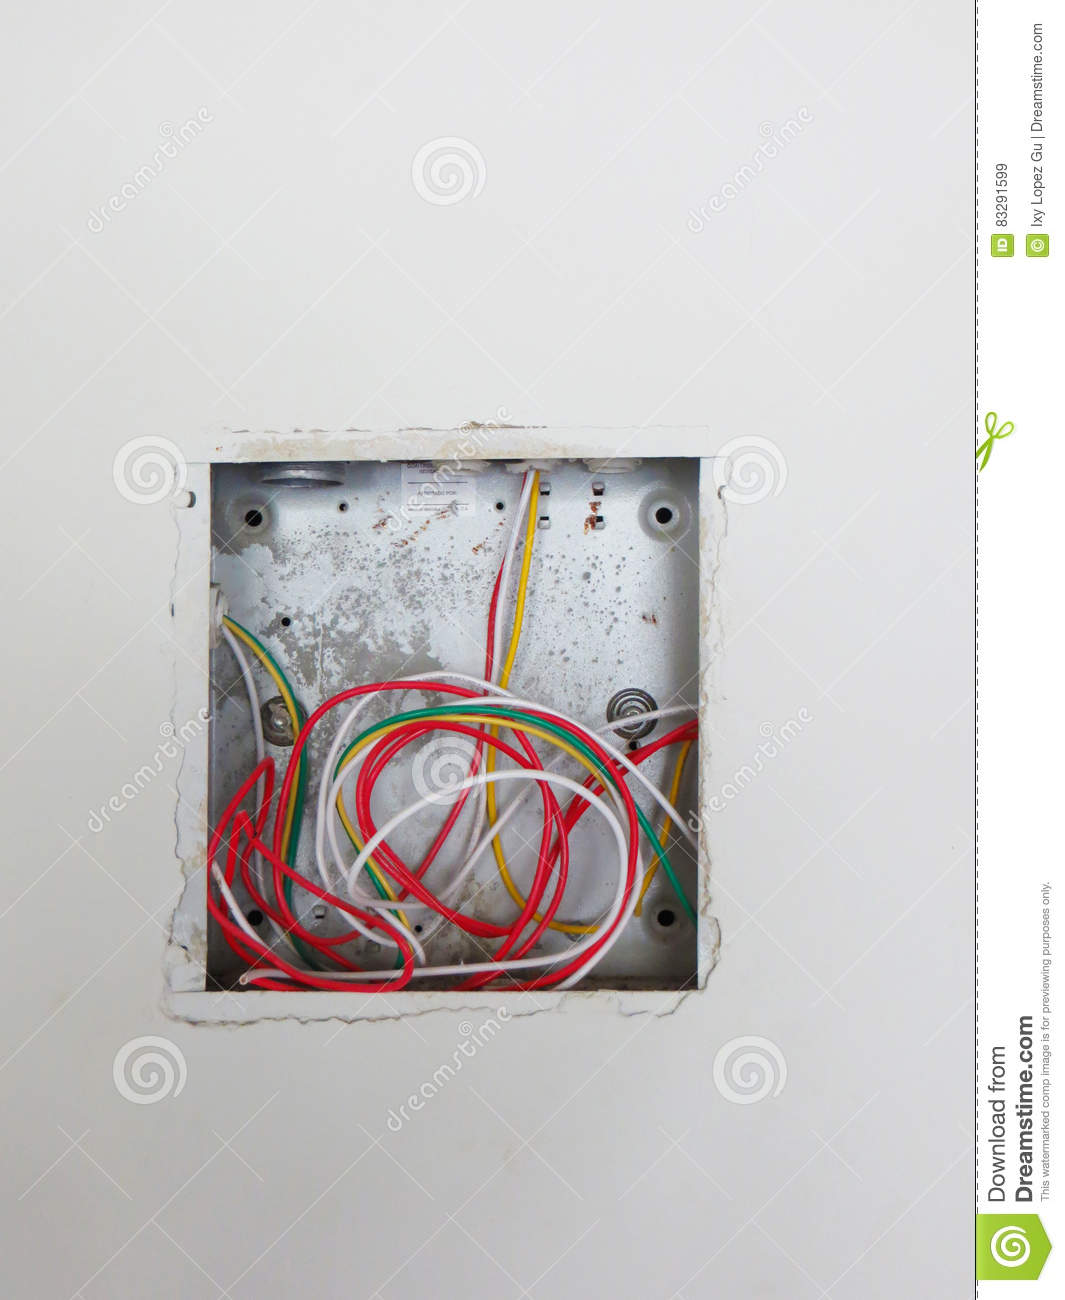 Open Electrical Box With Wiring Stock Image - Image of empty ...